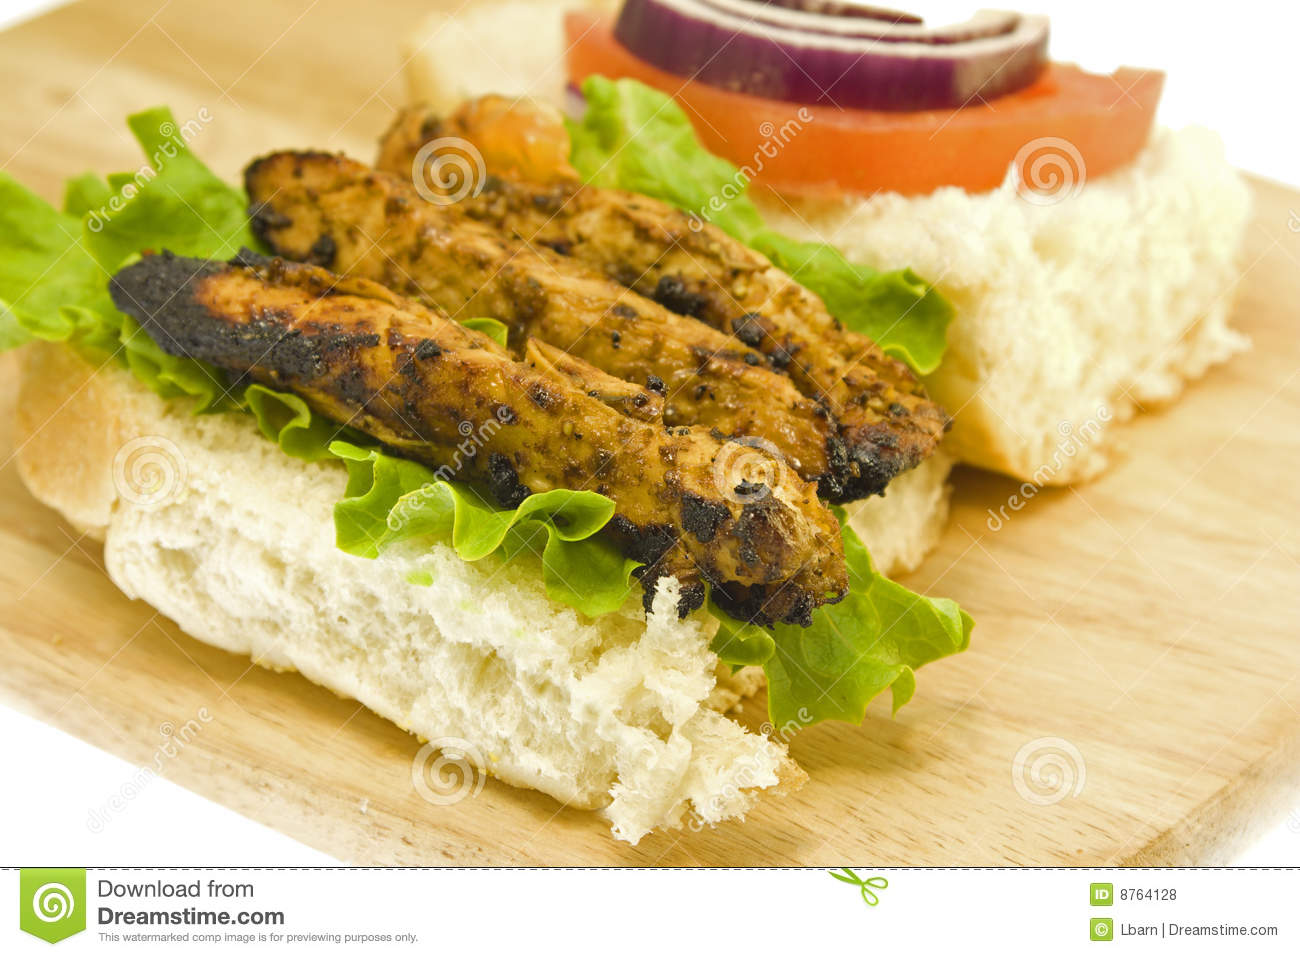 grilled chicken sandwich closeup royalty free stock photos